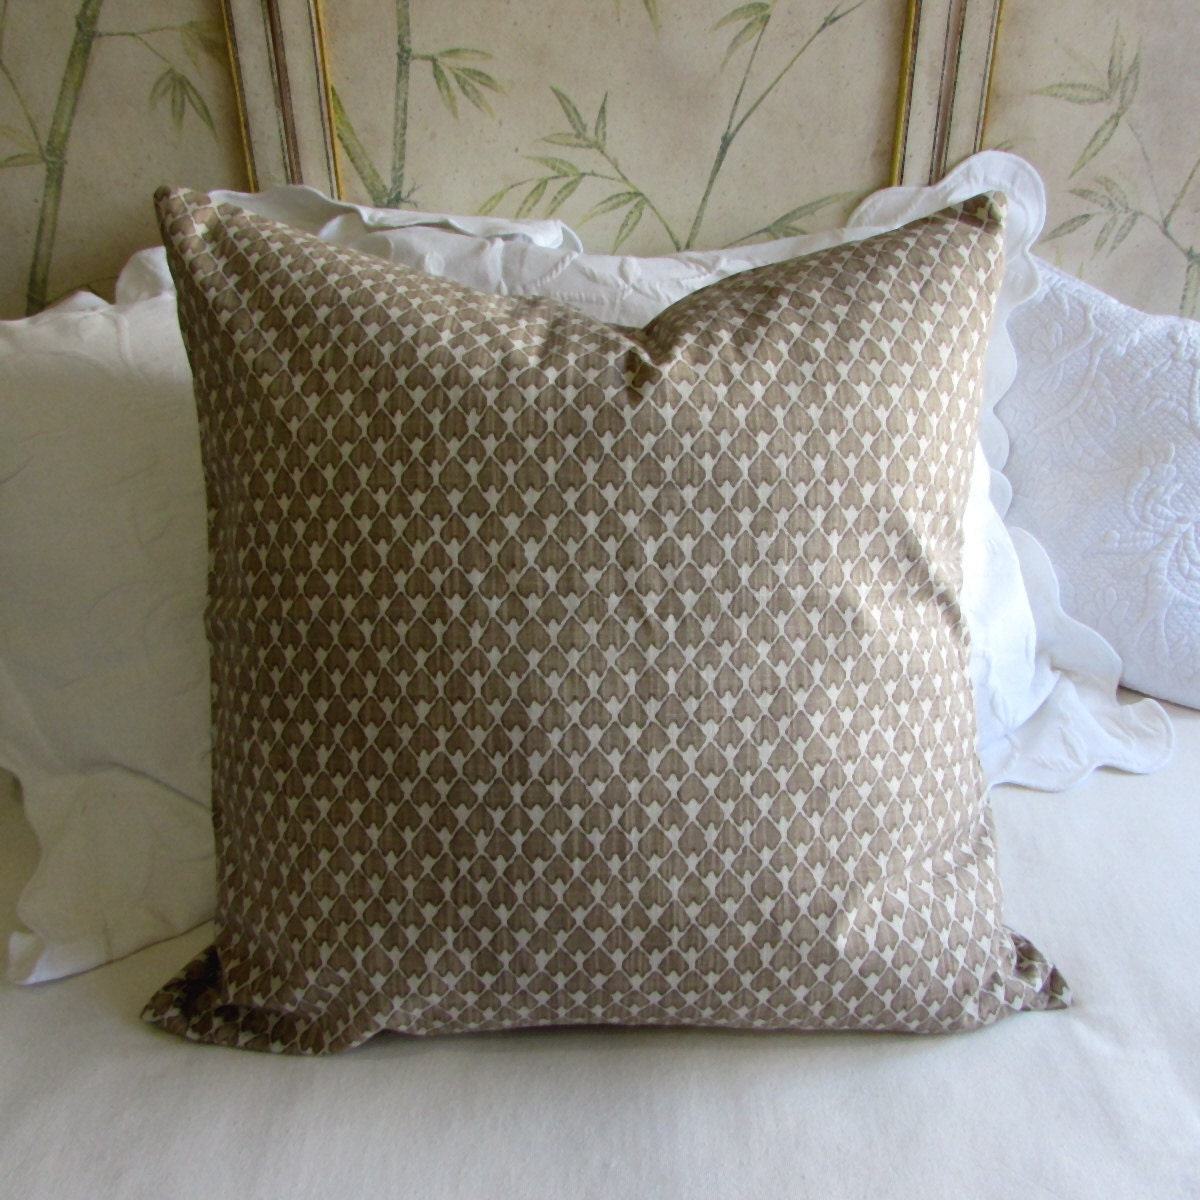 Zippered Pillow Cover Adding a zipper to a pillow cover makes it versatile; you can easily remove the insert to wash the cover, or replace it altogether. Use a zipper that is the exact length of or slightly longer than the pillow opening.